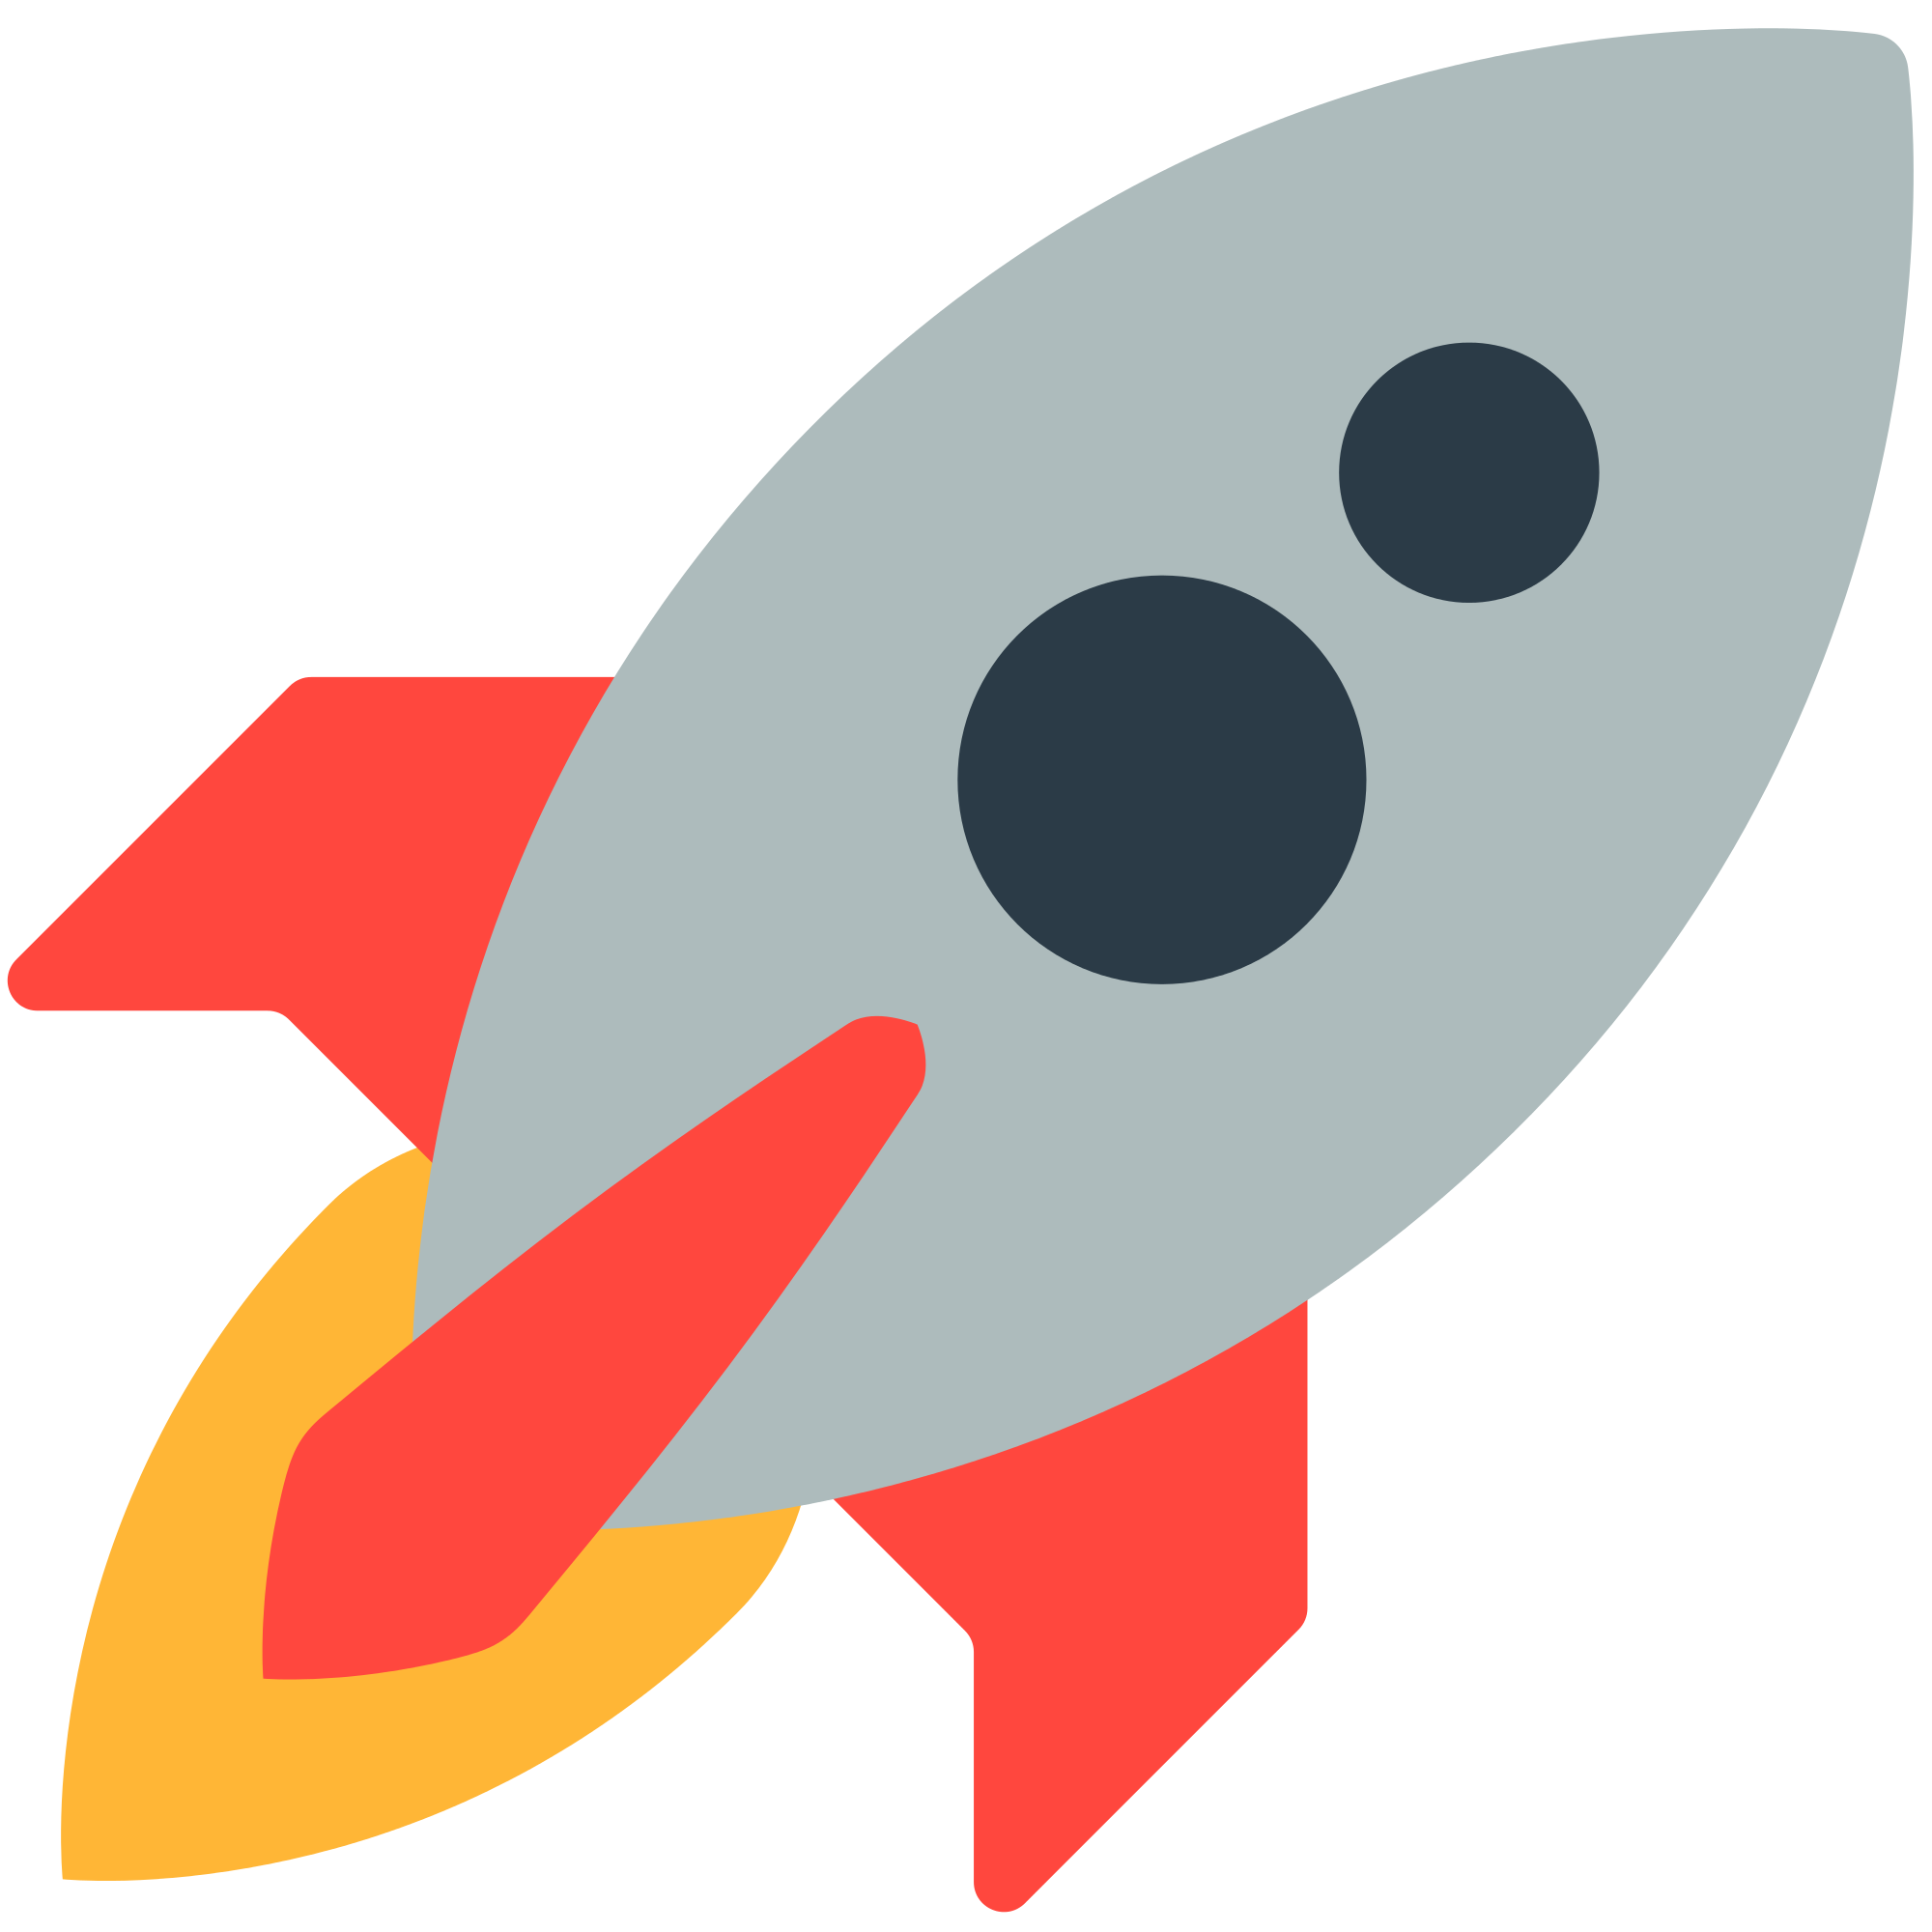 Spaceship clipart svg. File fxemoji u f